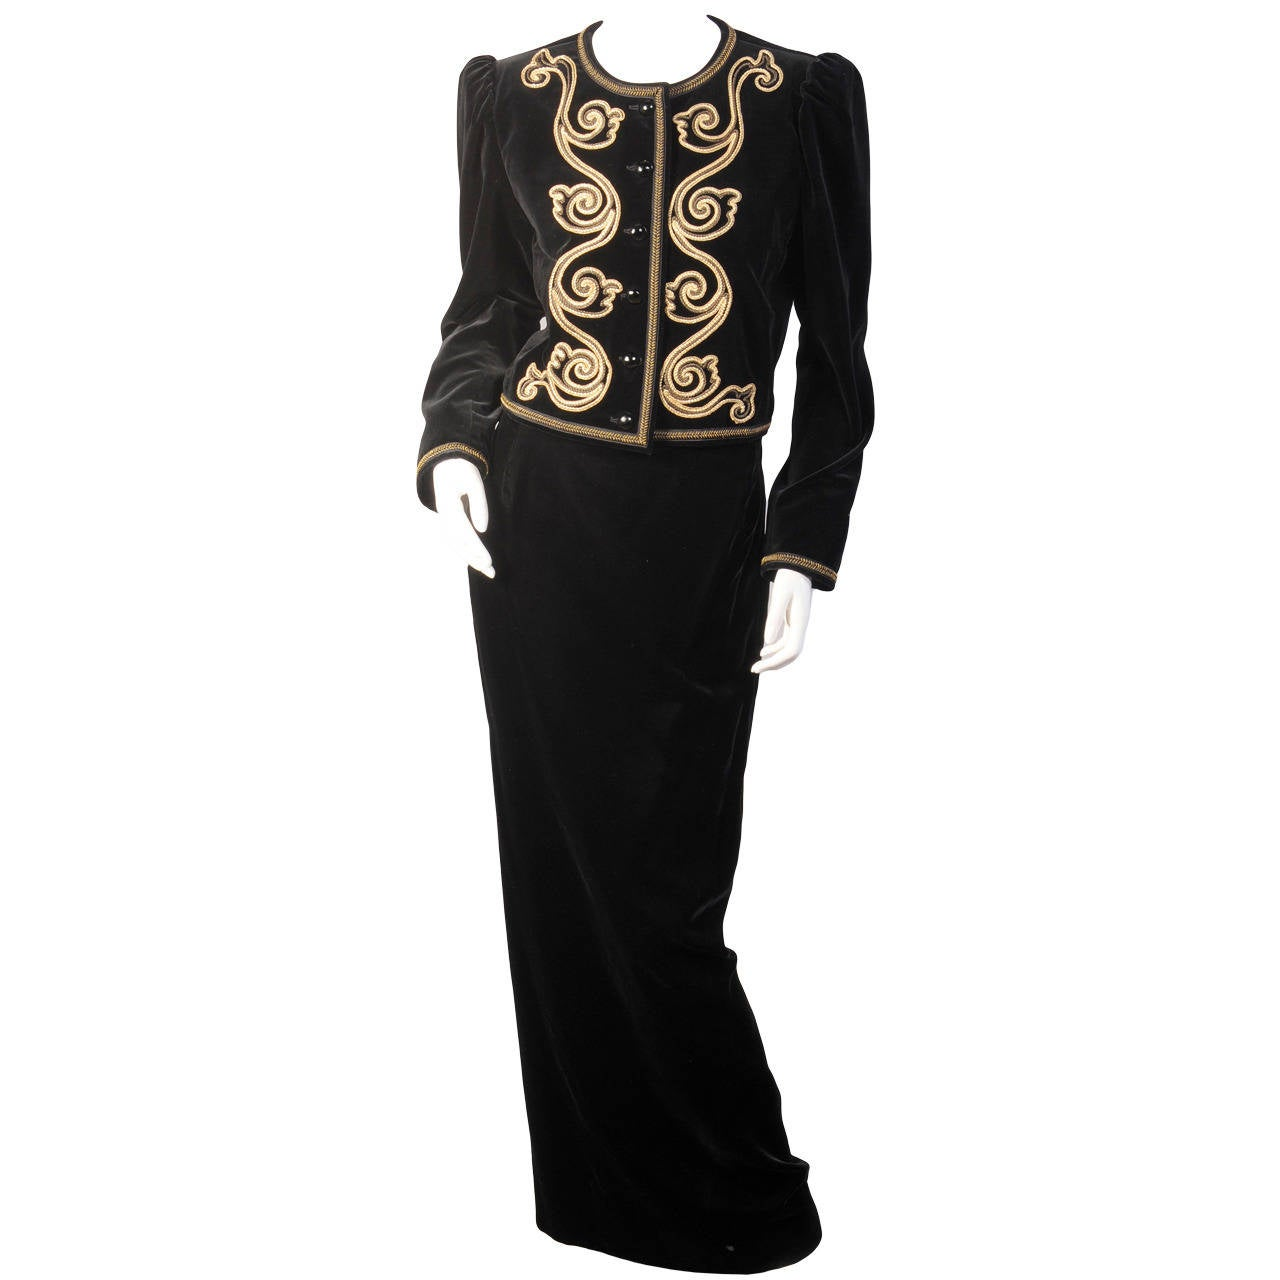 1801ec5a738 Yves Saint Laurent Evening Suit with Gold Soutache Braid For Sale at ...